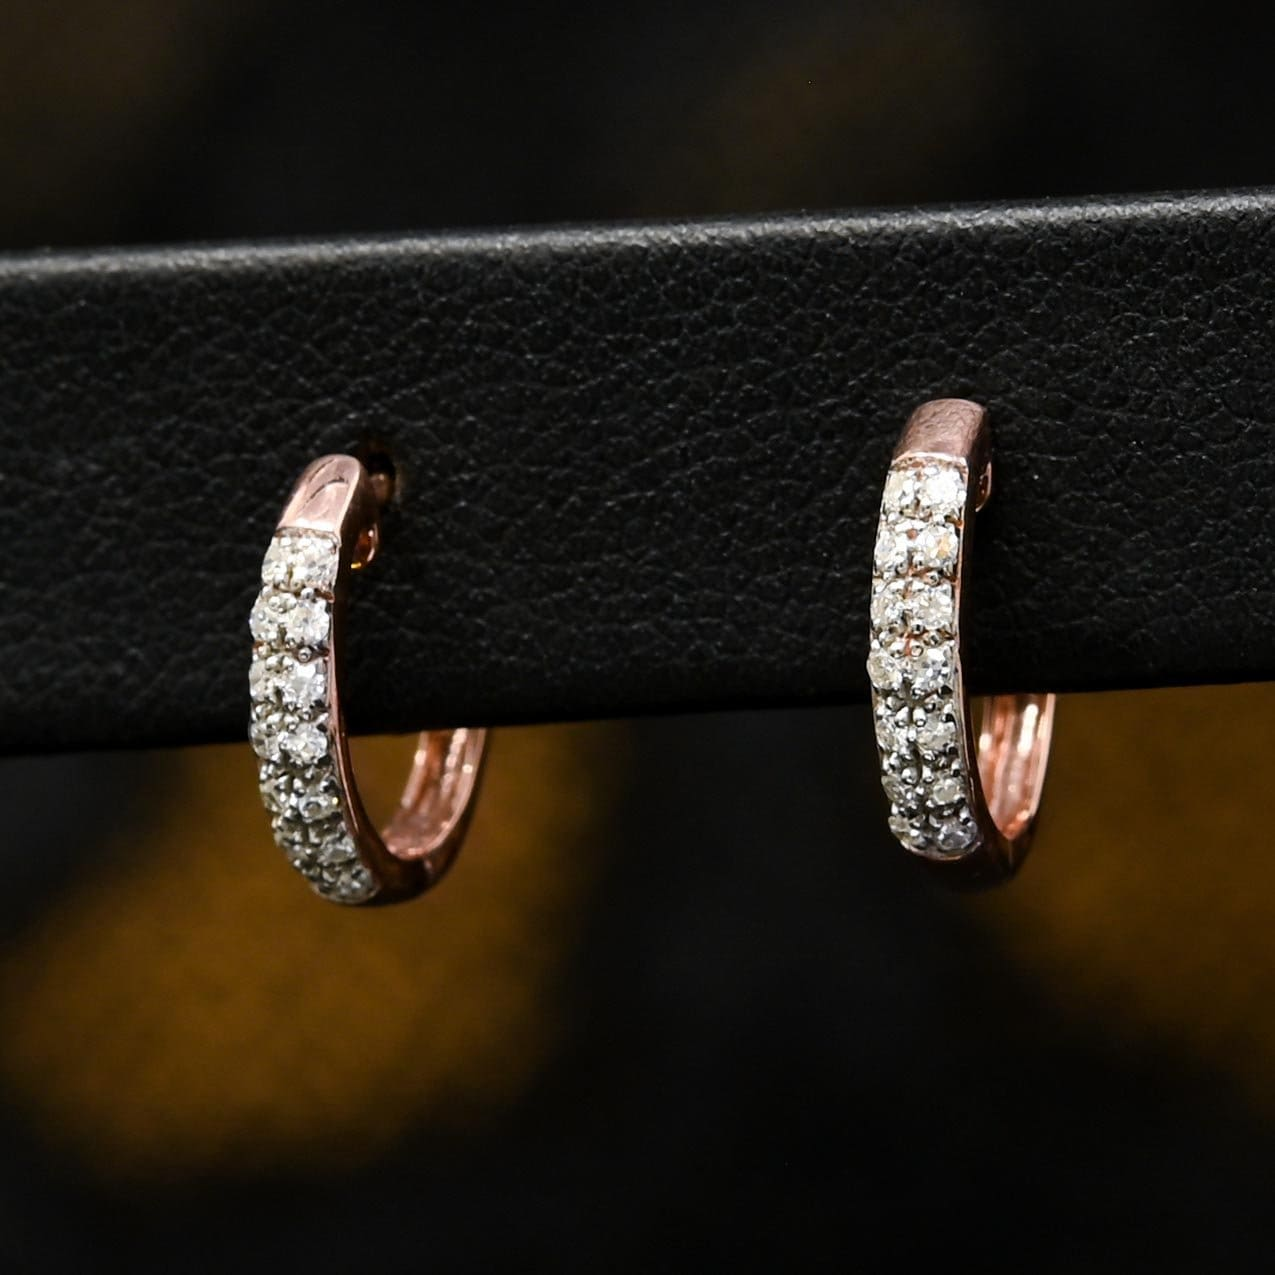 Anneaux Diamants en Or 10K | Boucles d'Oreilles Round D5 - Diamant 15mm / Or Rose